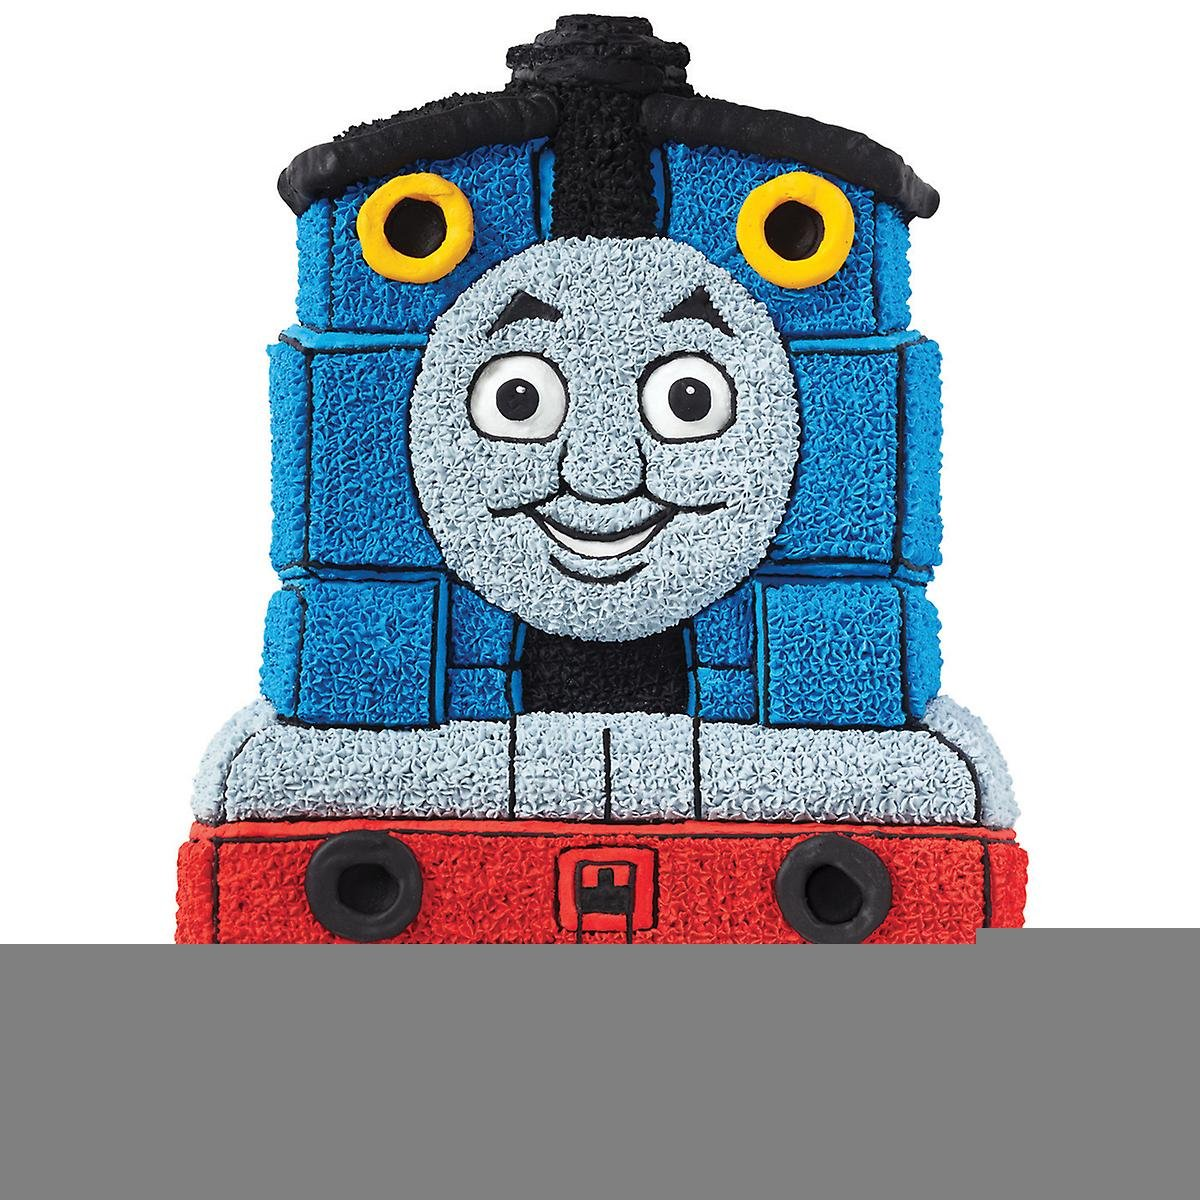 Wilton Novelty Cake PanThomas And Friends by Wilton (Image #1)